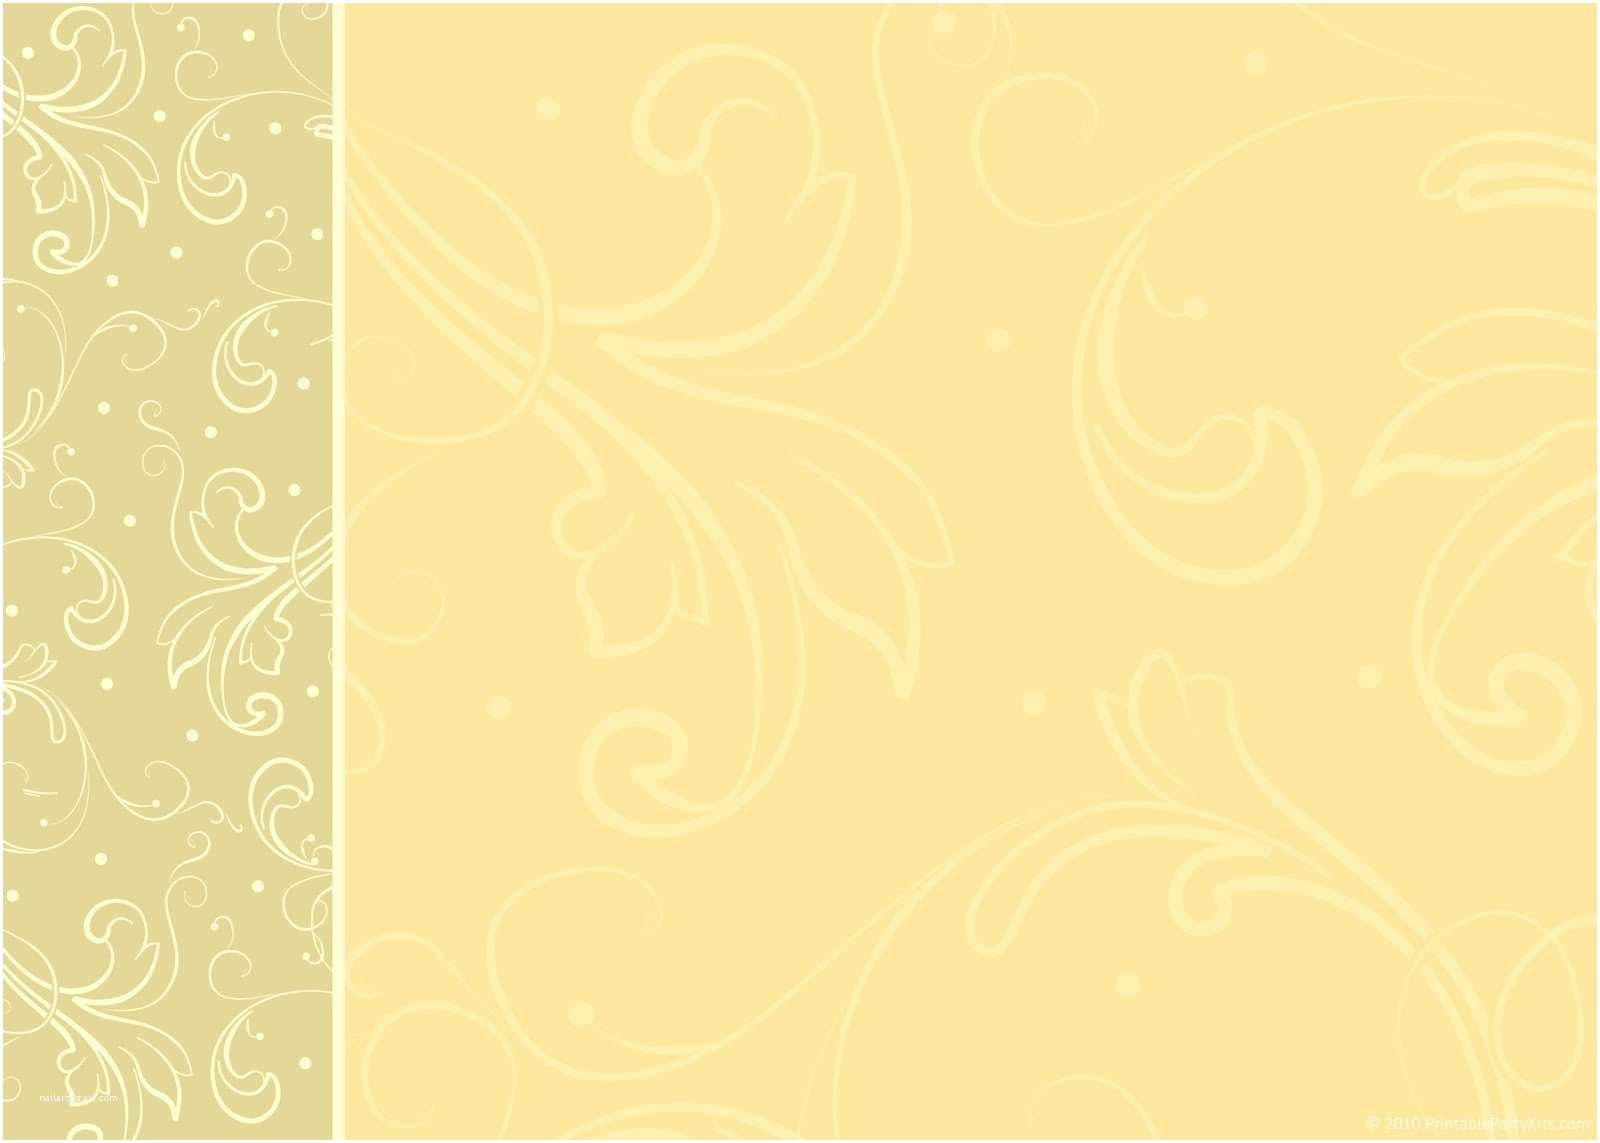 Background Images for Wedding Invitation Cards Beautiful Wedding Invitation Background Designs – Weneedfun